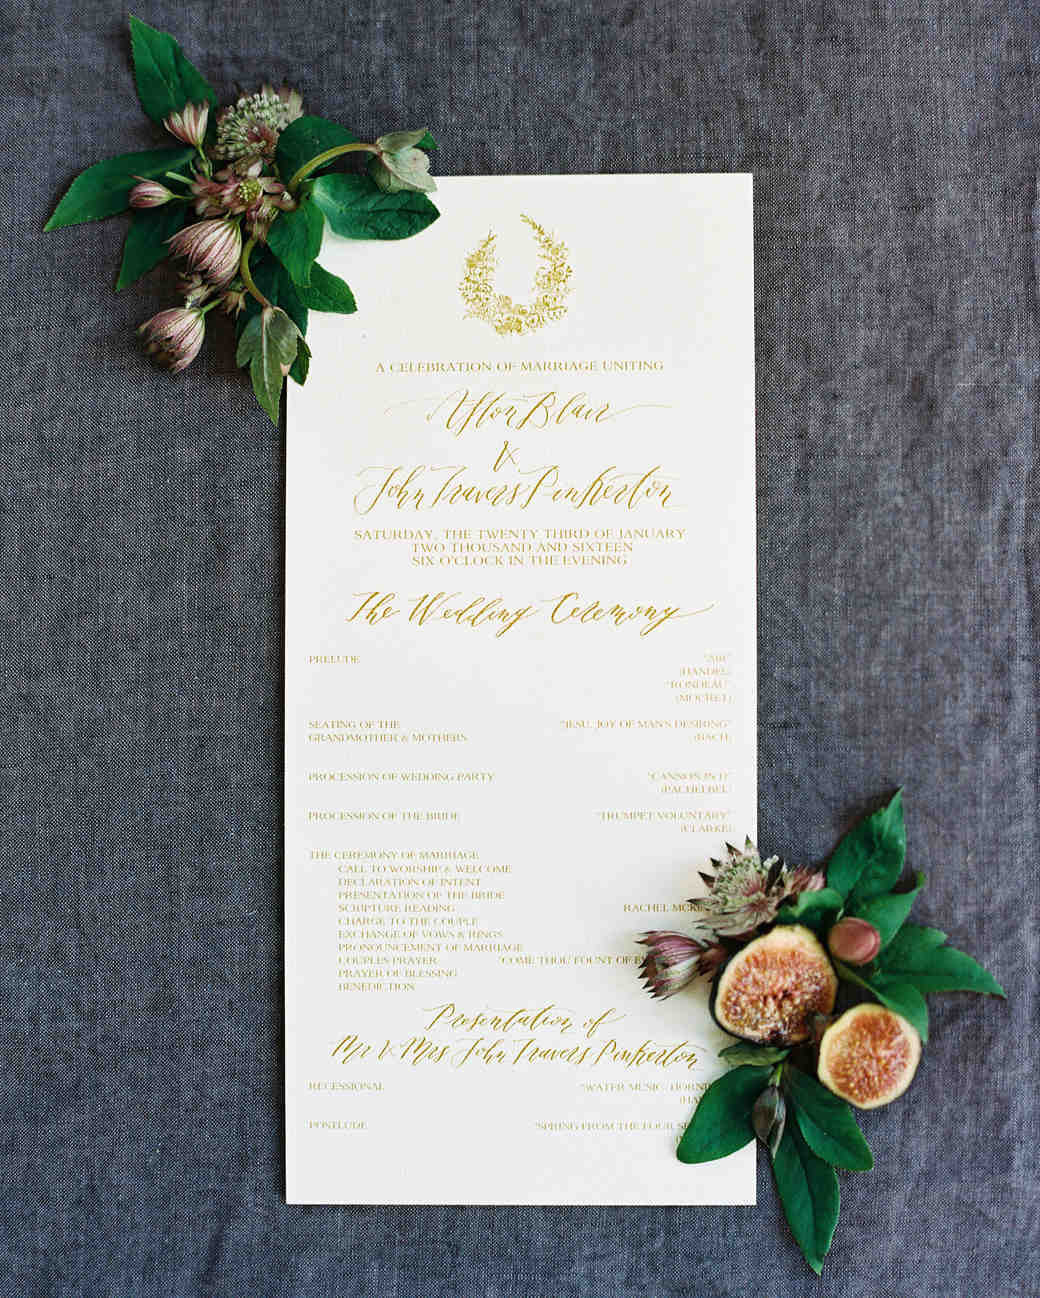 Unique Wedding Reception Program Ideas: 44 Perfect Wedding Ceremony Programs